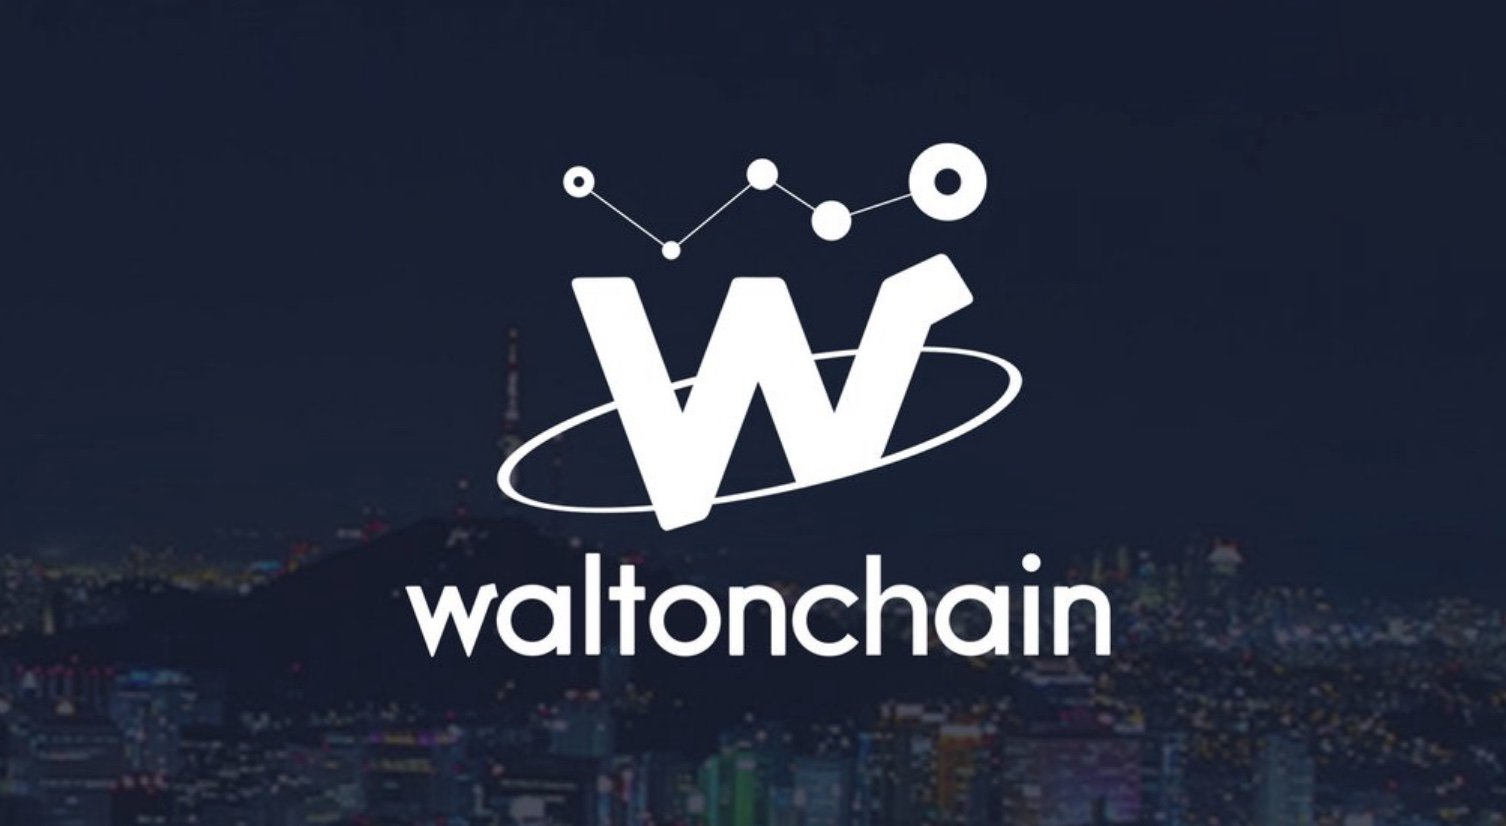 Waltonchain (WTC) Unveils World's First Blockchain-based Clothing Authenticity Traceability System 13